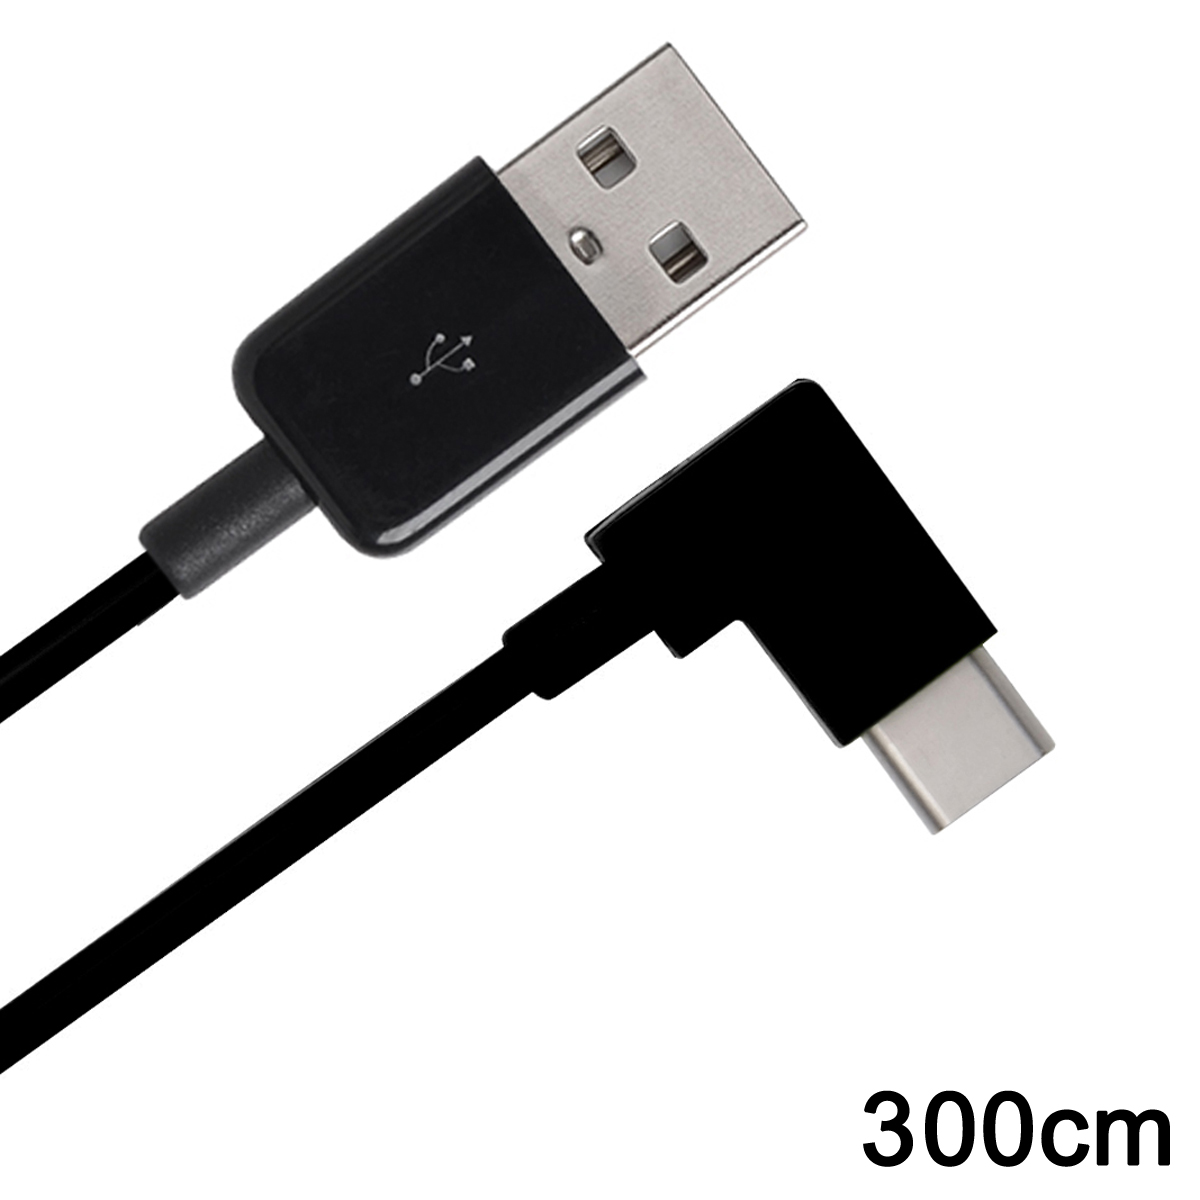 Right Angled USB 3.1 Type C USB-C to USB 2.0 Cable 90 Degree Connector for Tablet Mobile Phone 200cm,2m